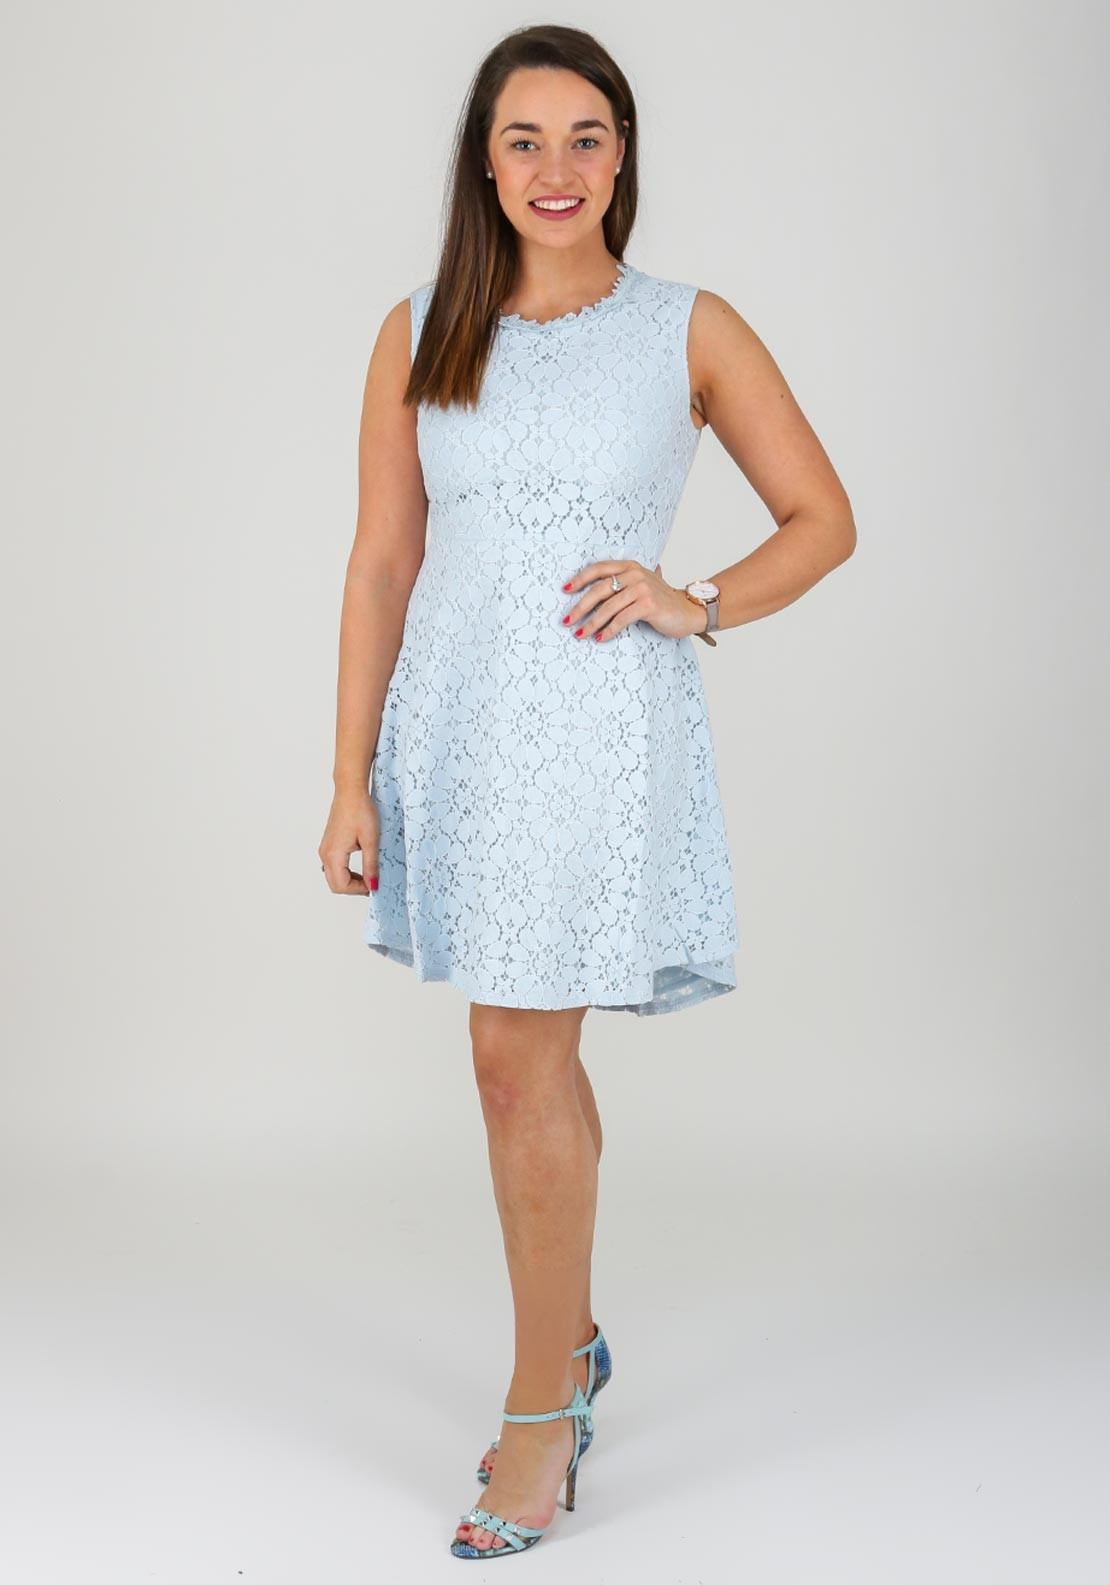 7ced5d87 Molly Bracken Lace Fit and Flare Dress, Blue | McElhinneys